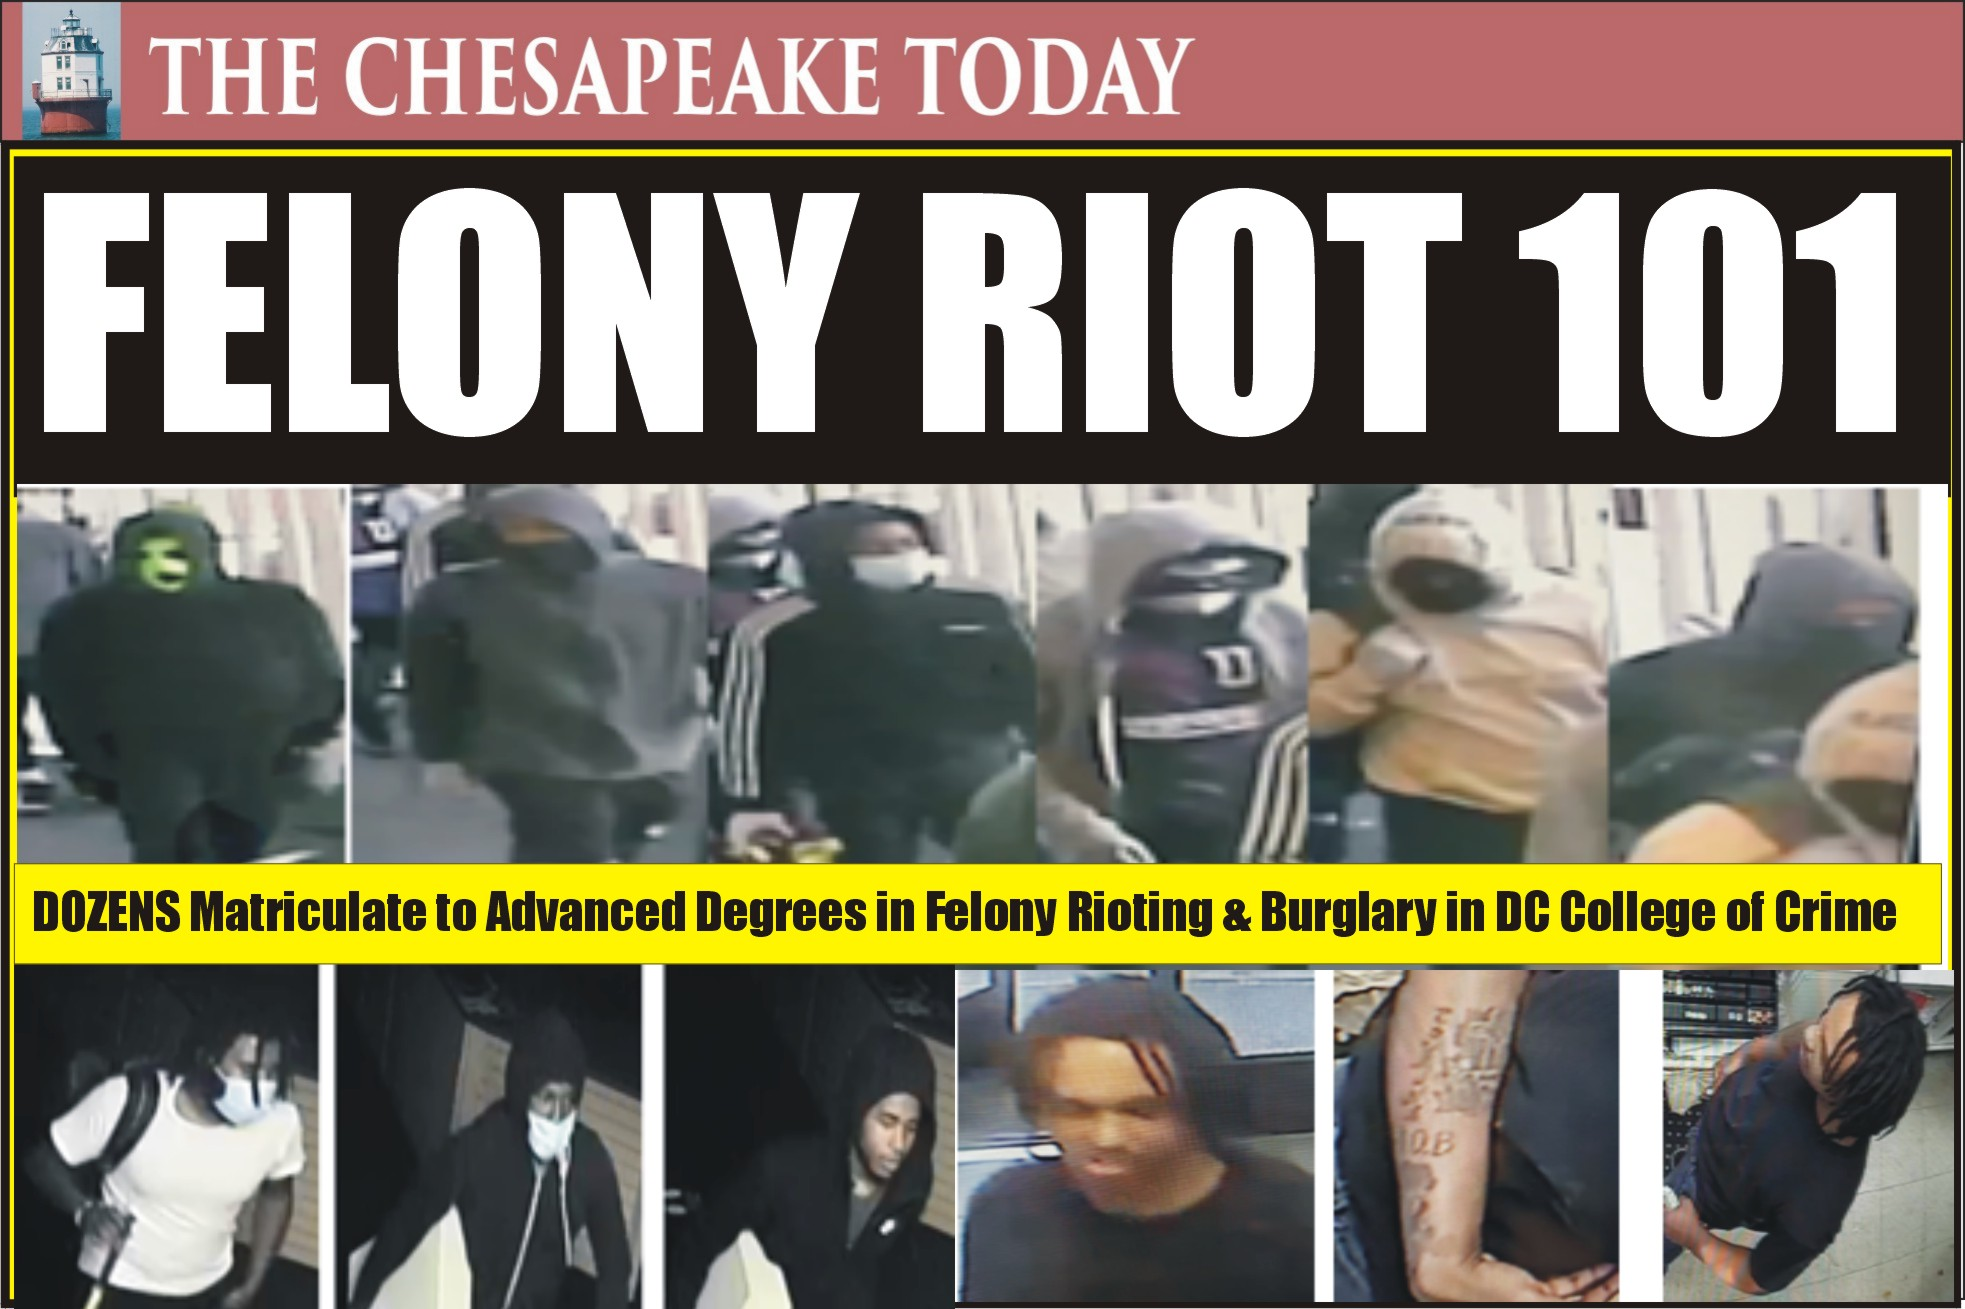 FELONY RIOT: Dozens of District miscreants gain new notoriety with felony rioting, looting, and curfew violations